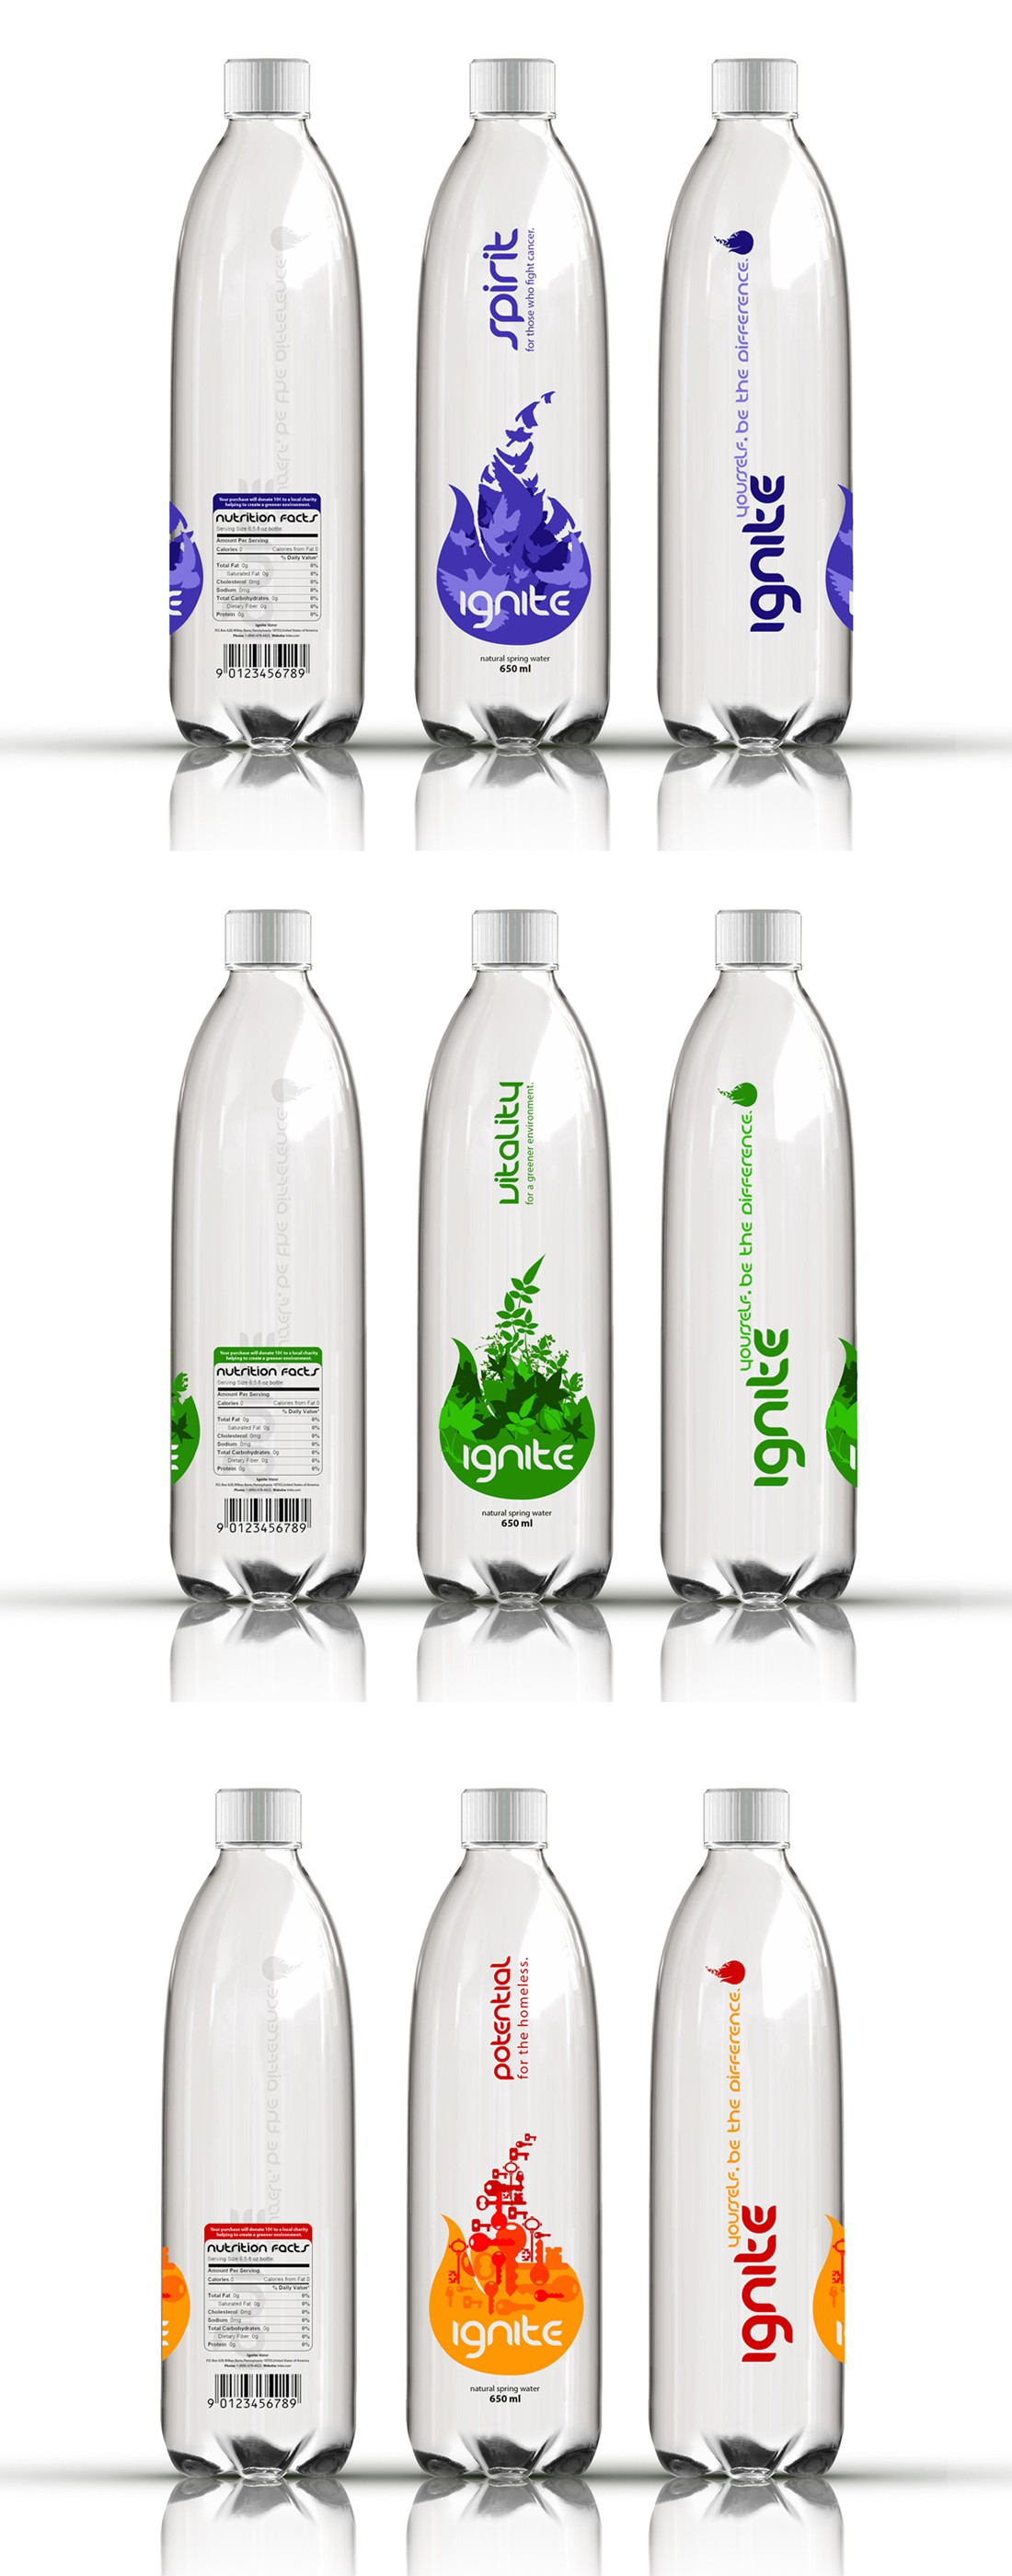 product label for ignite